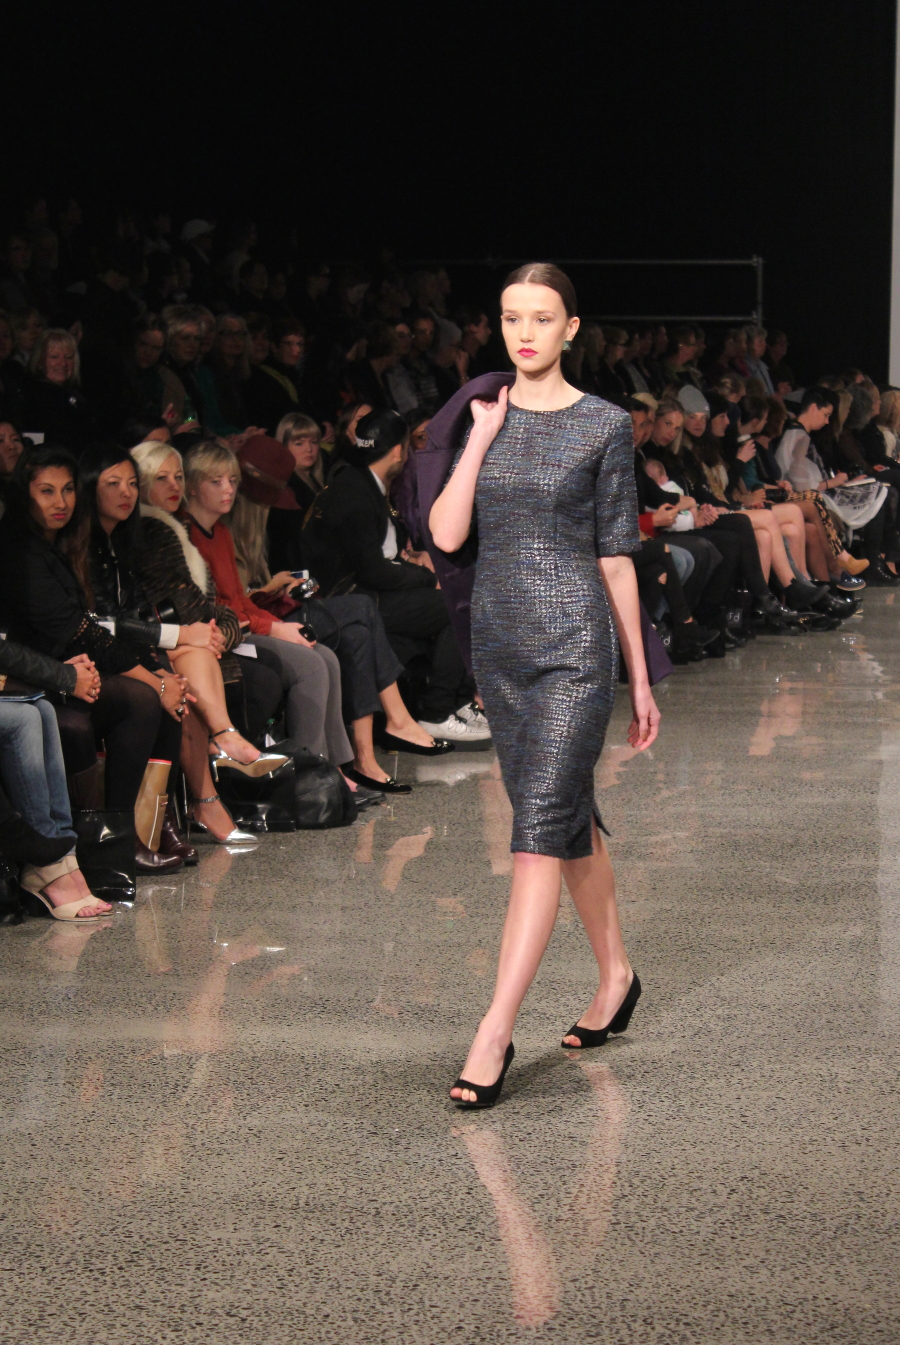 Millicent blur and focus NZFW